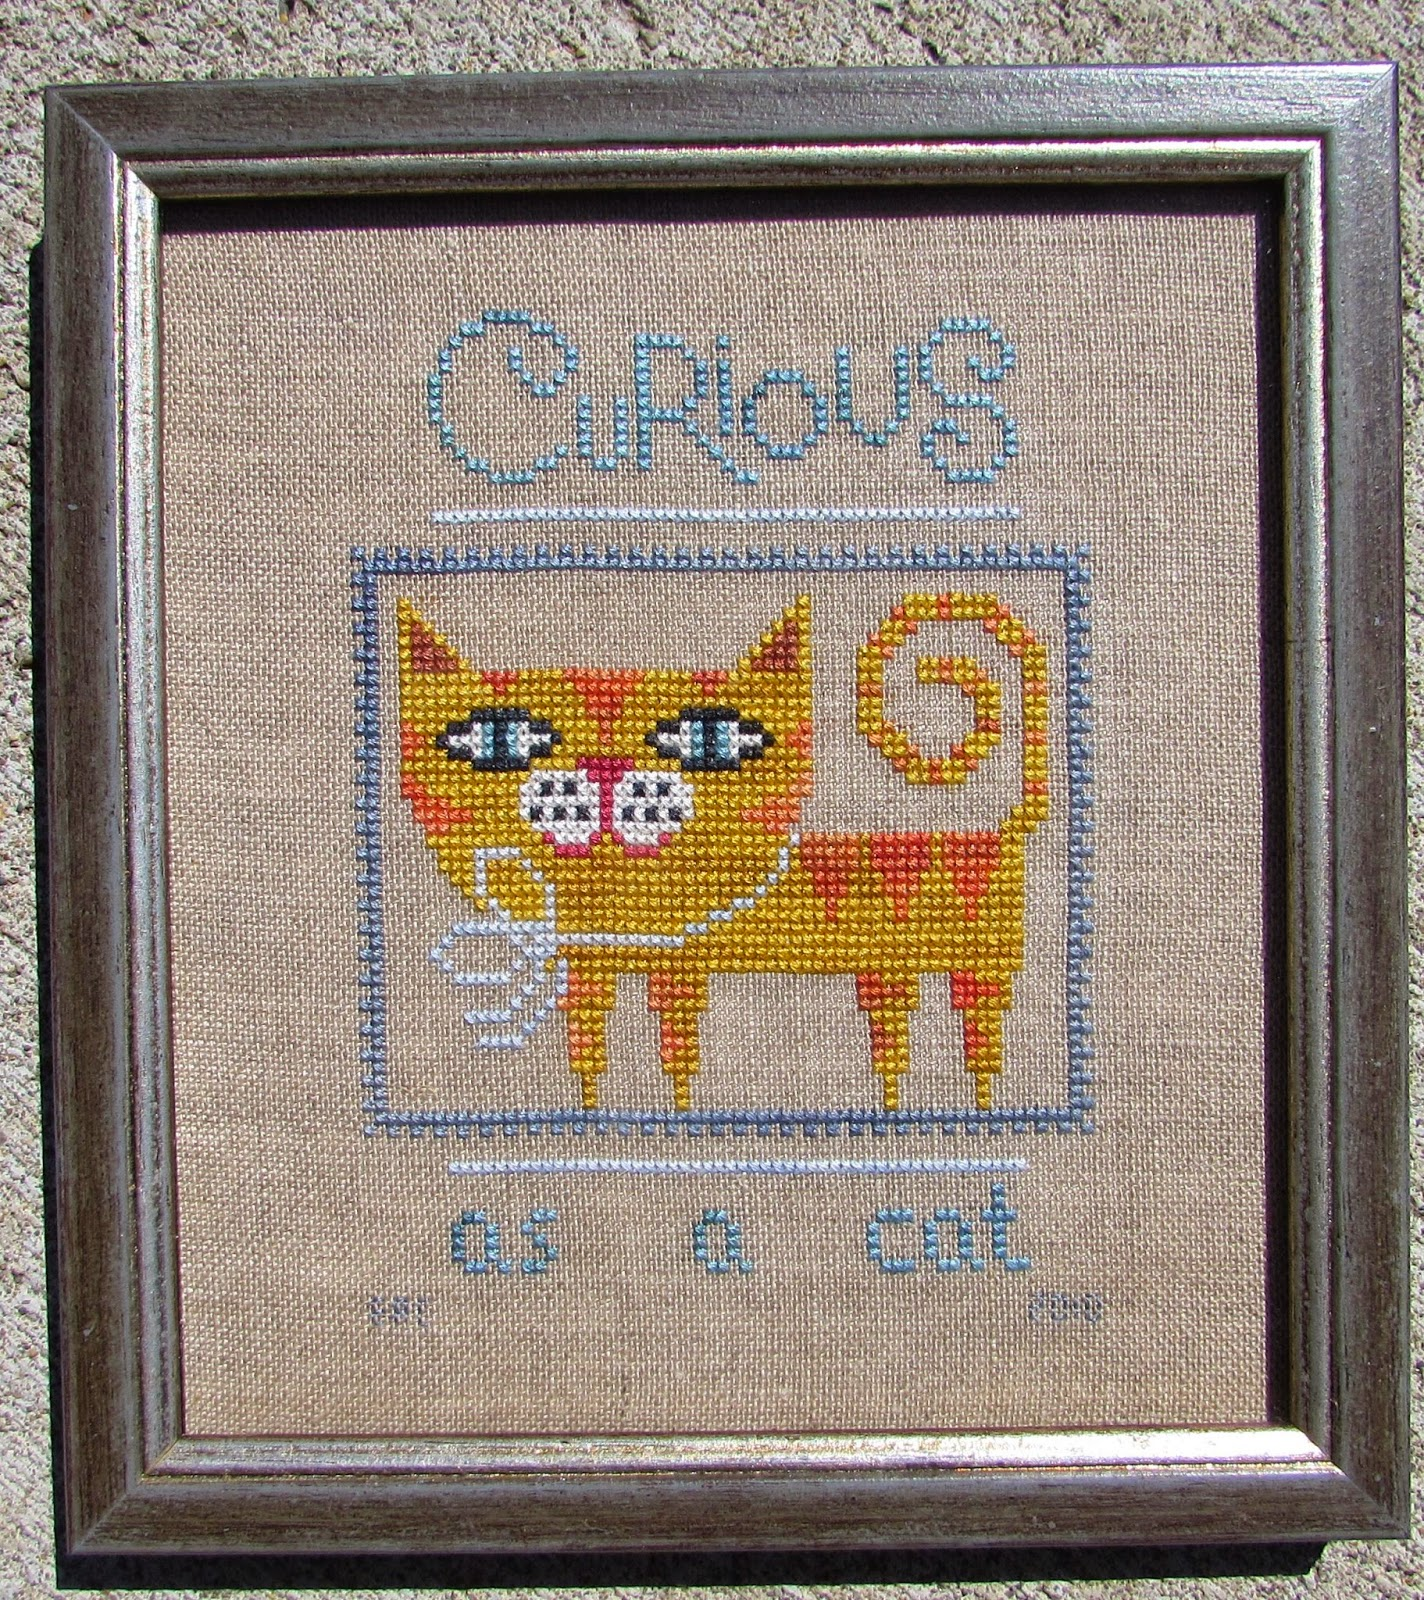 Its friday cat pictures it s friday so it s time for - It S Fitting Given My Cat Stitching Theme This Month That I Share My Birds Of A Feather Curious As A Cat Framed Finish The Frame Is Very Simple With